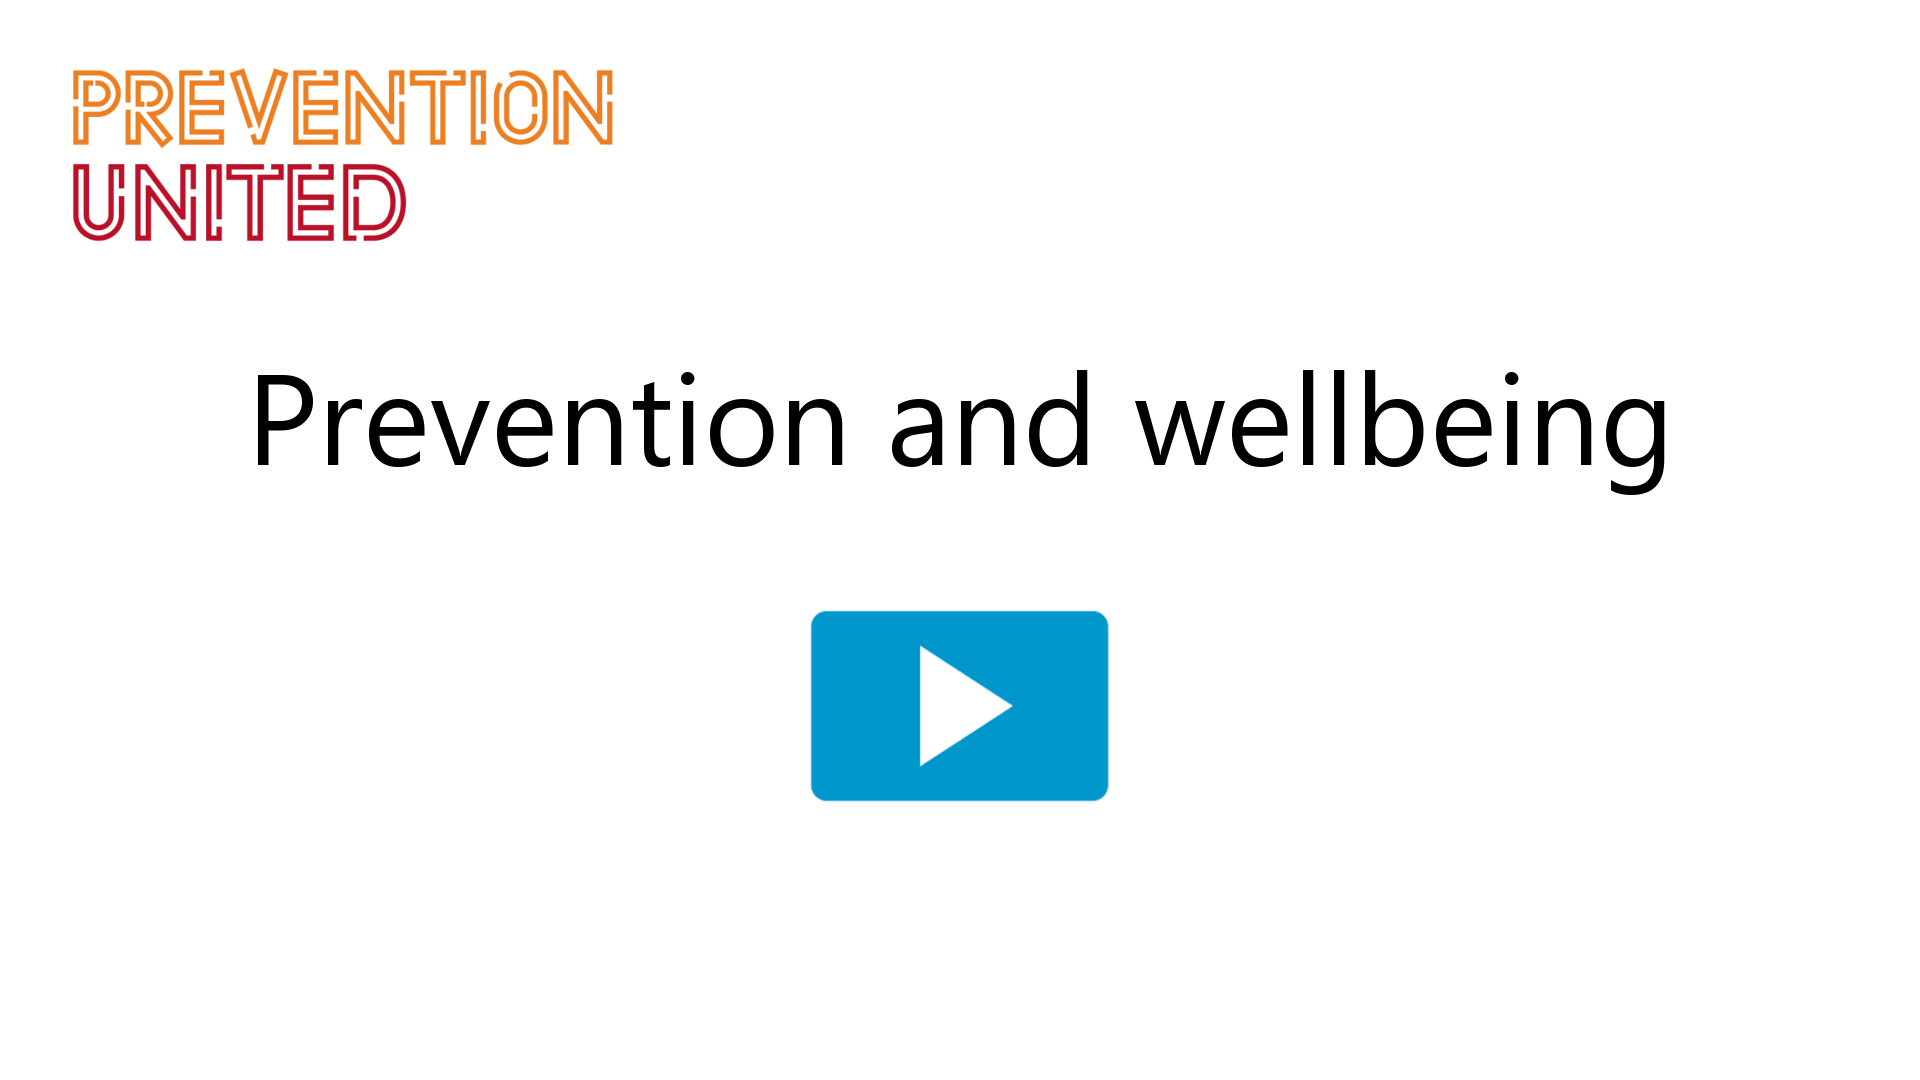 Prevention wellbeing